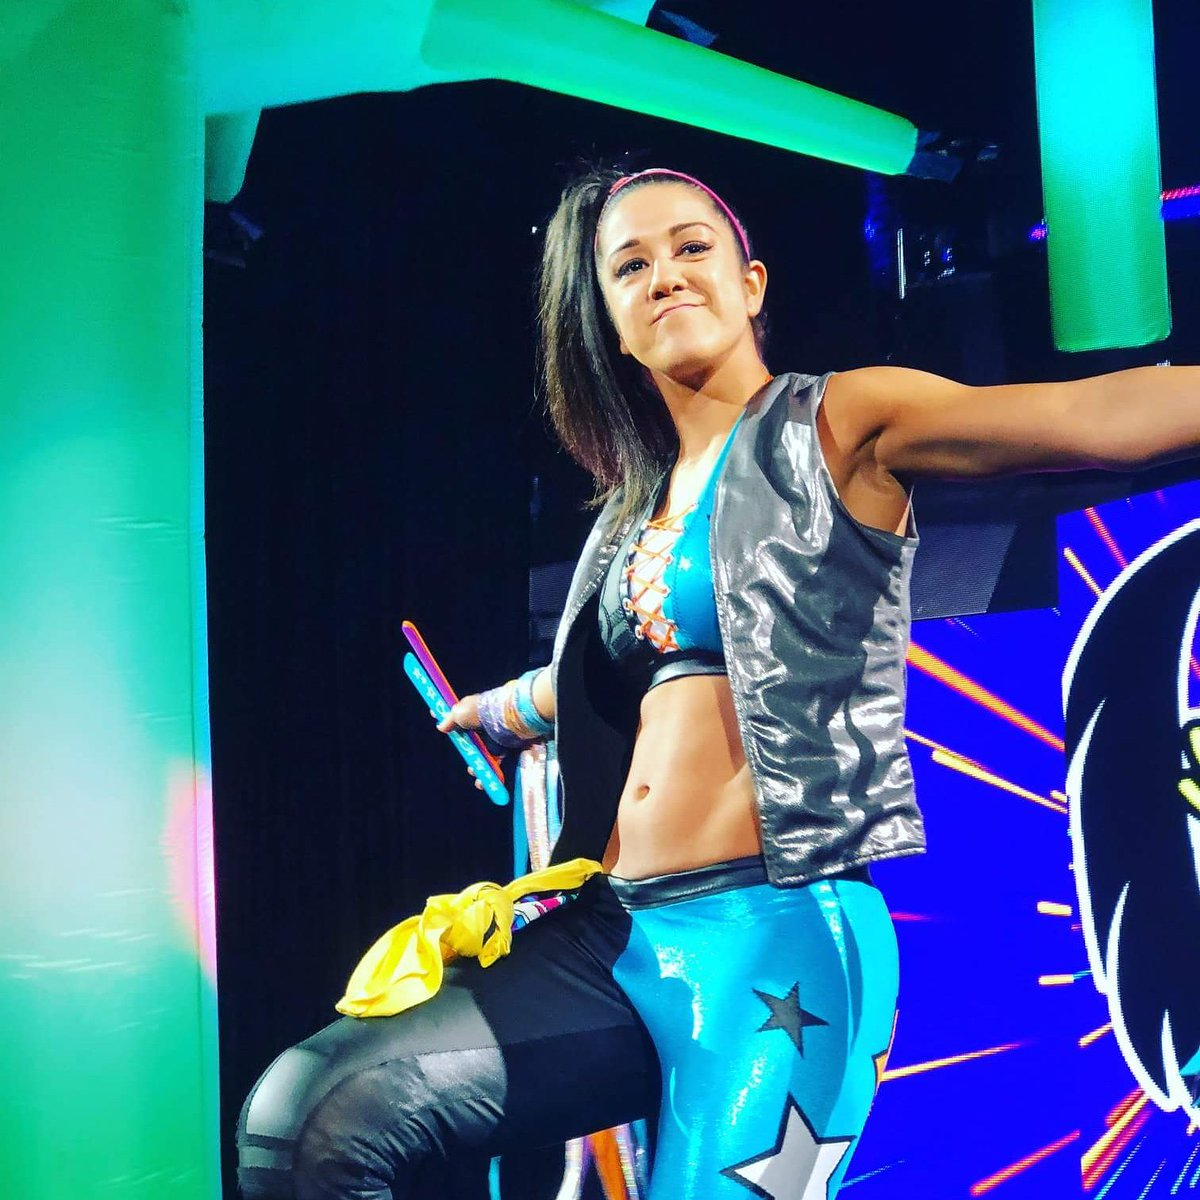 bayley awesome pic (2)